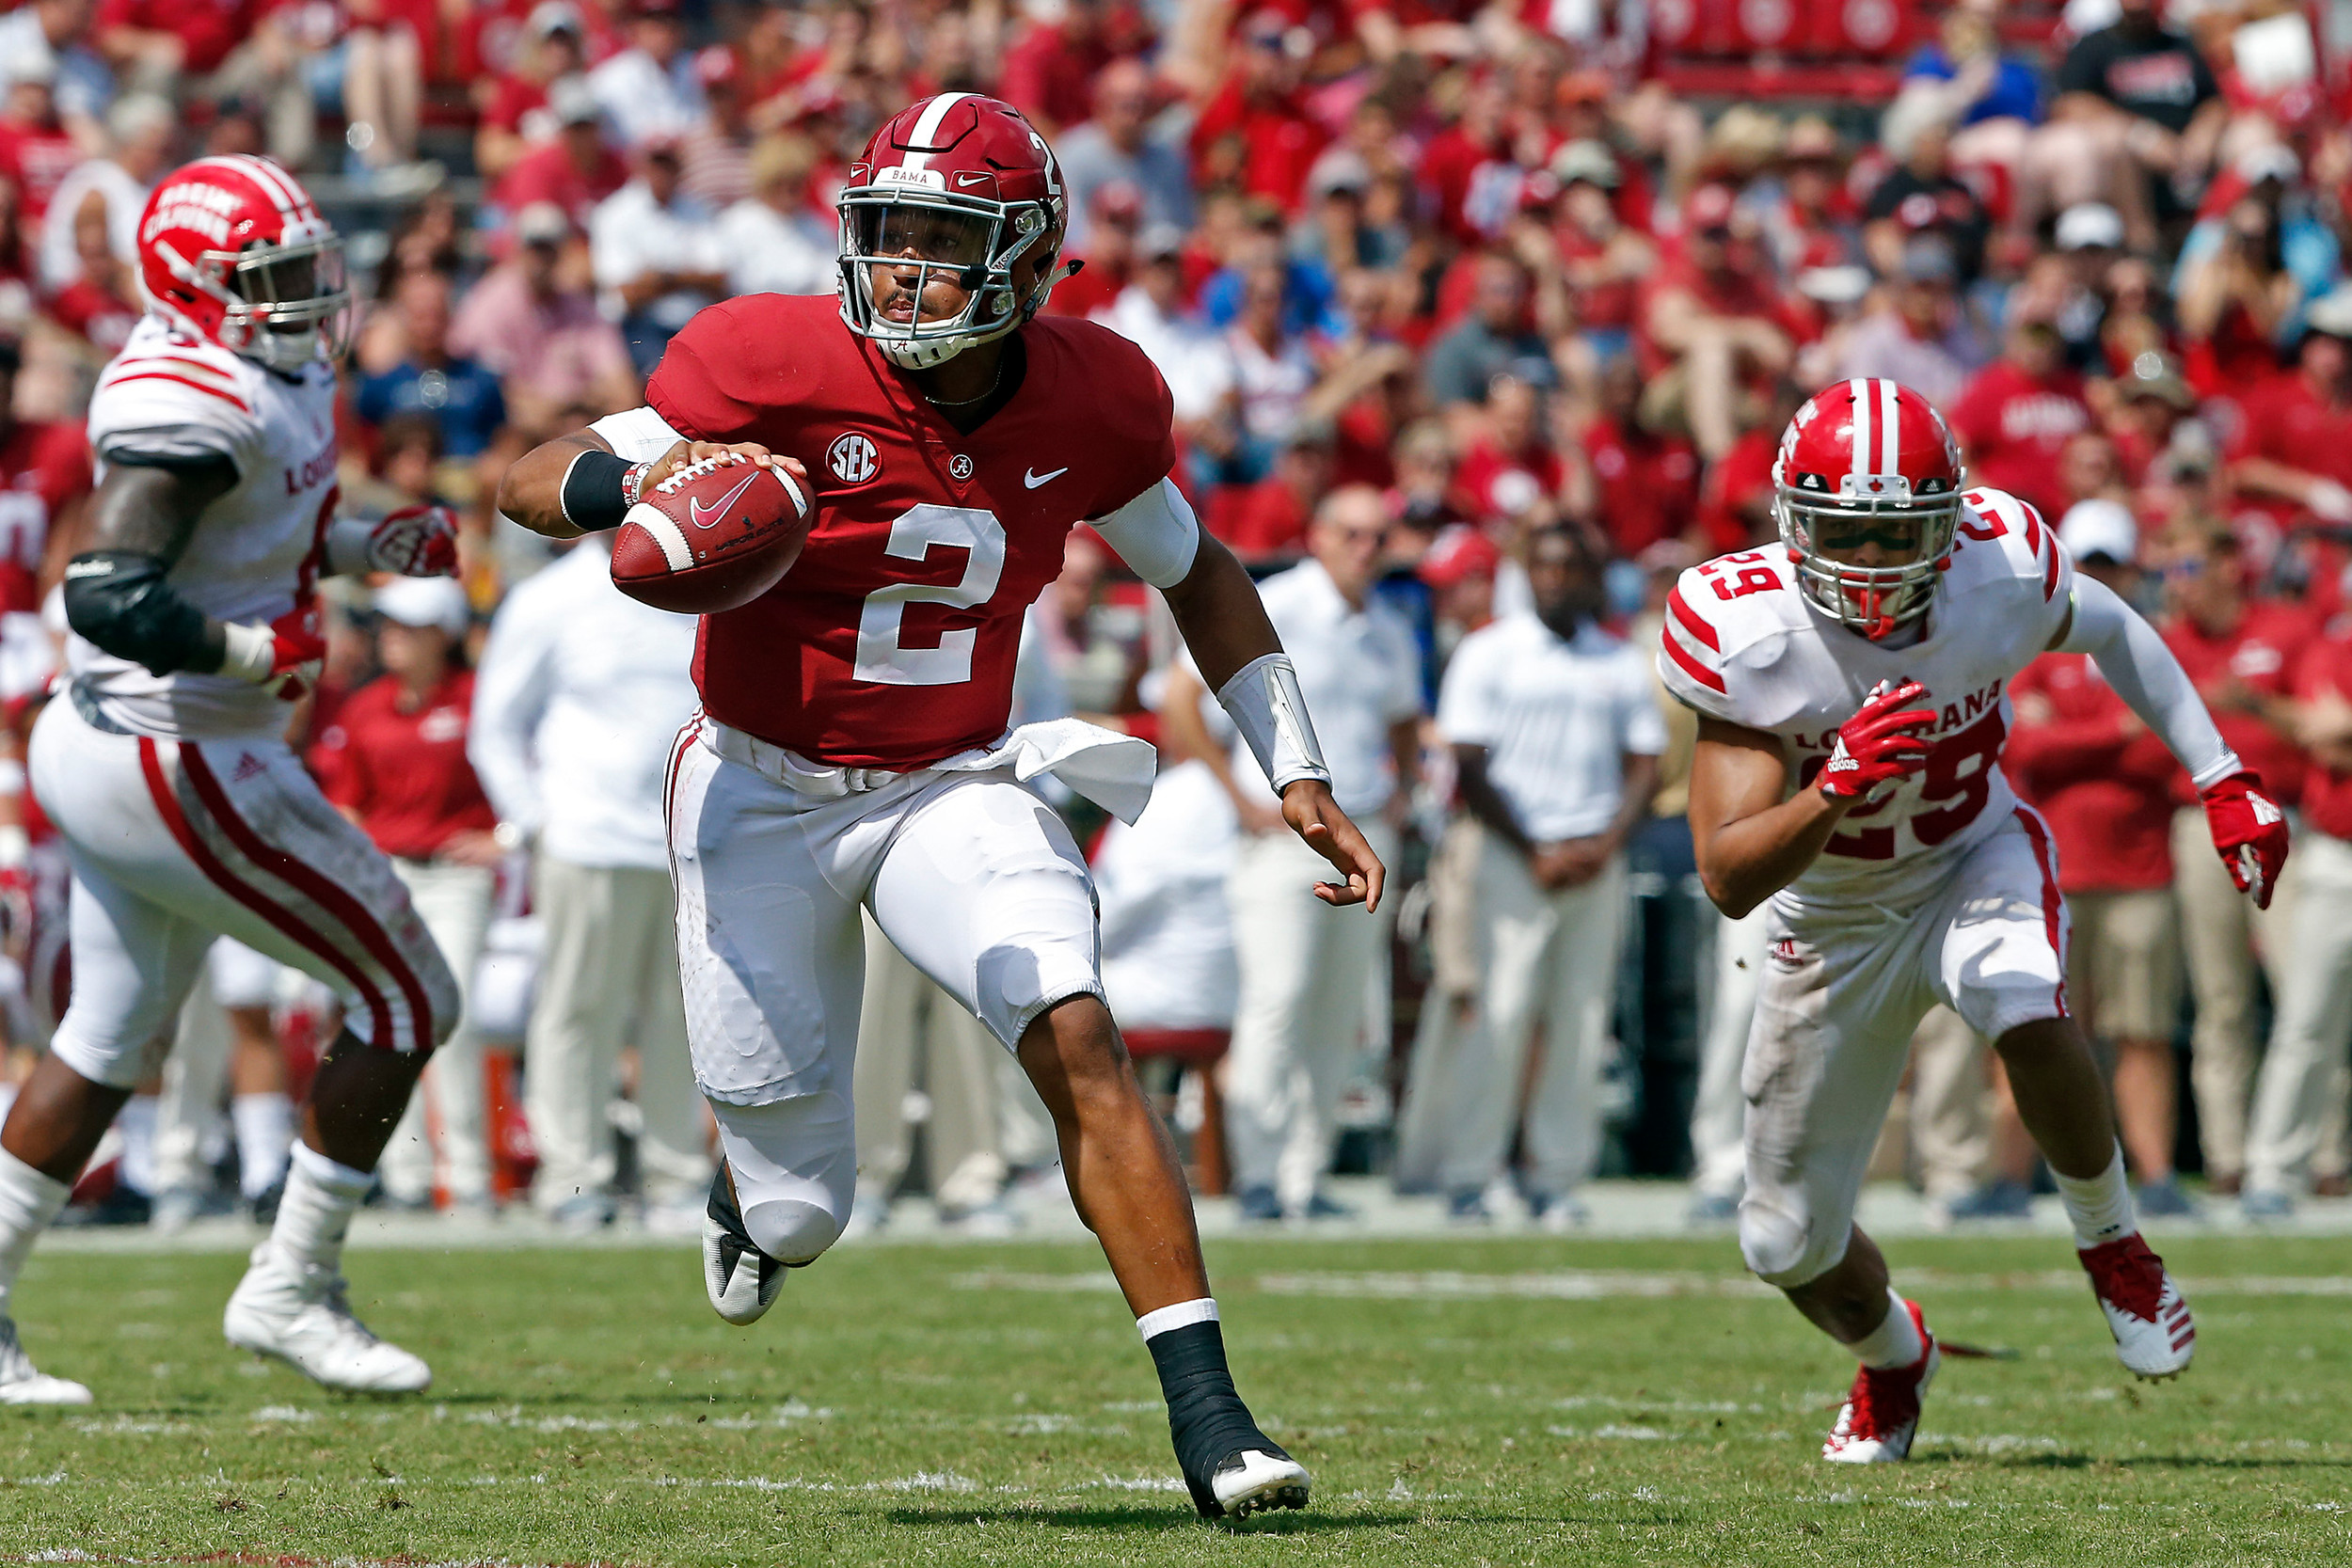 Alabama Crimson Tide quarterback Jalen Hurts (2) gains yardage for a first down at Bryant-Denny Stadium in Tuscaloosa, Al on September 29, 2018. Jason Clark / Daily Mountain Eagle